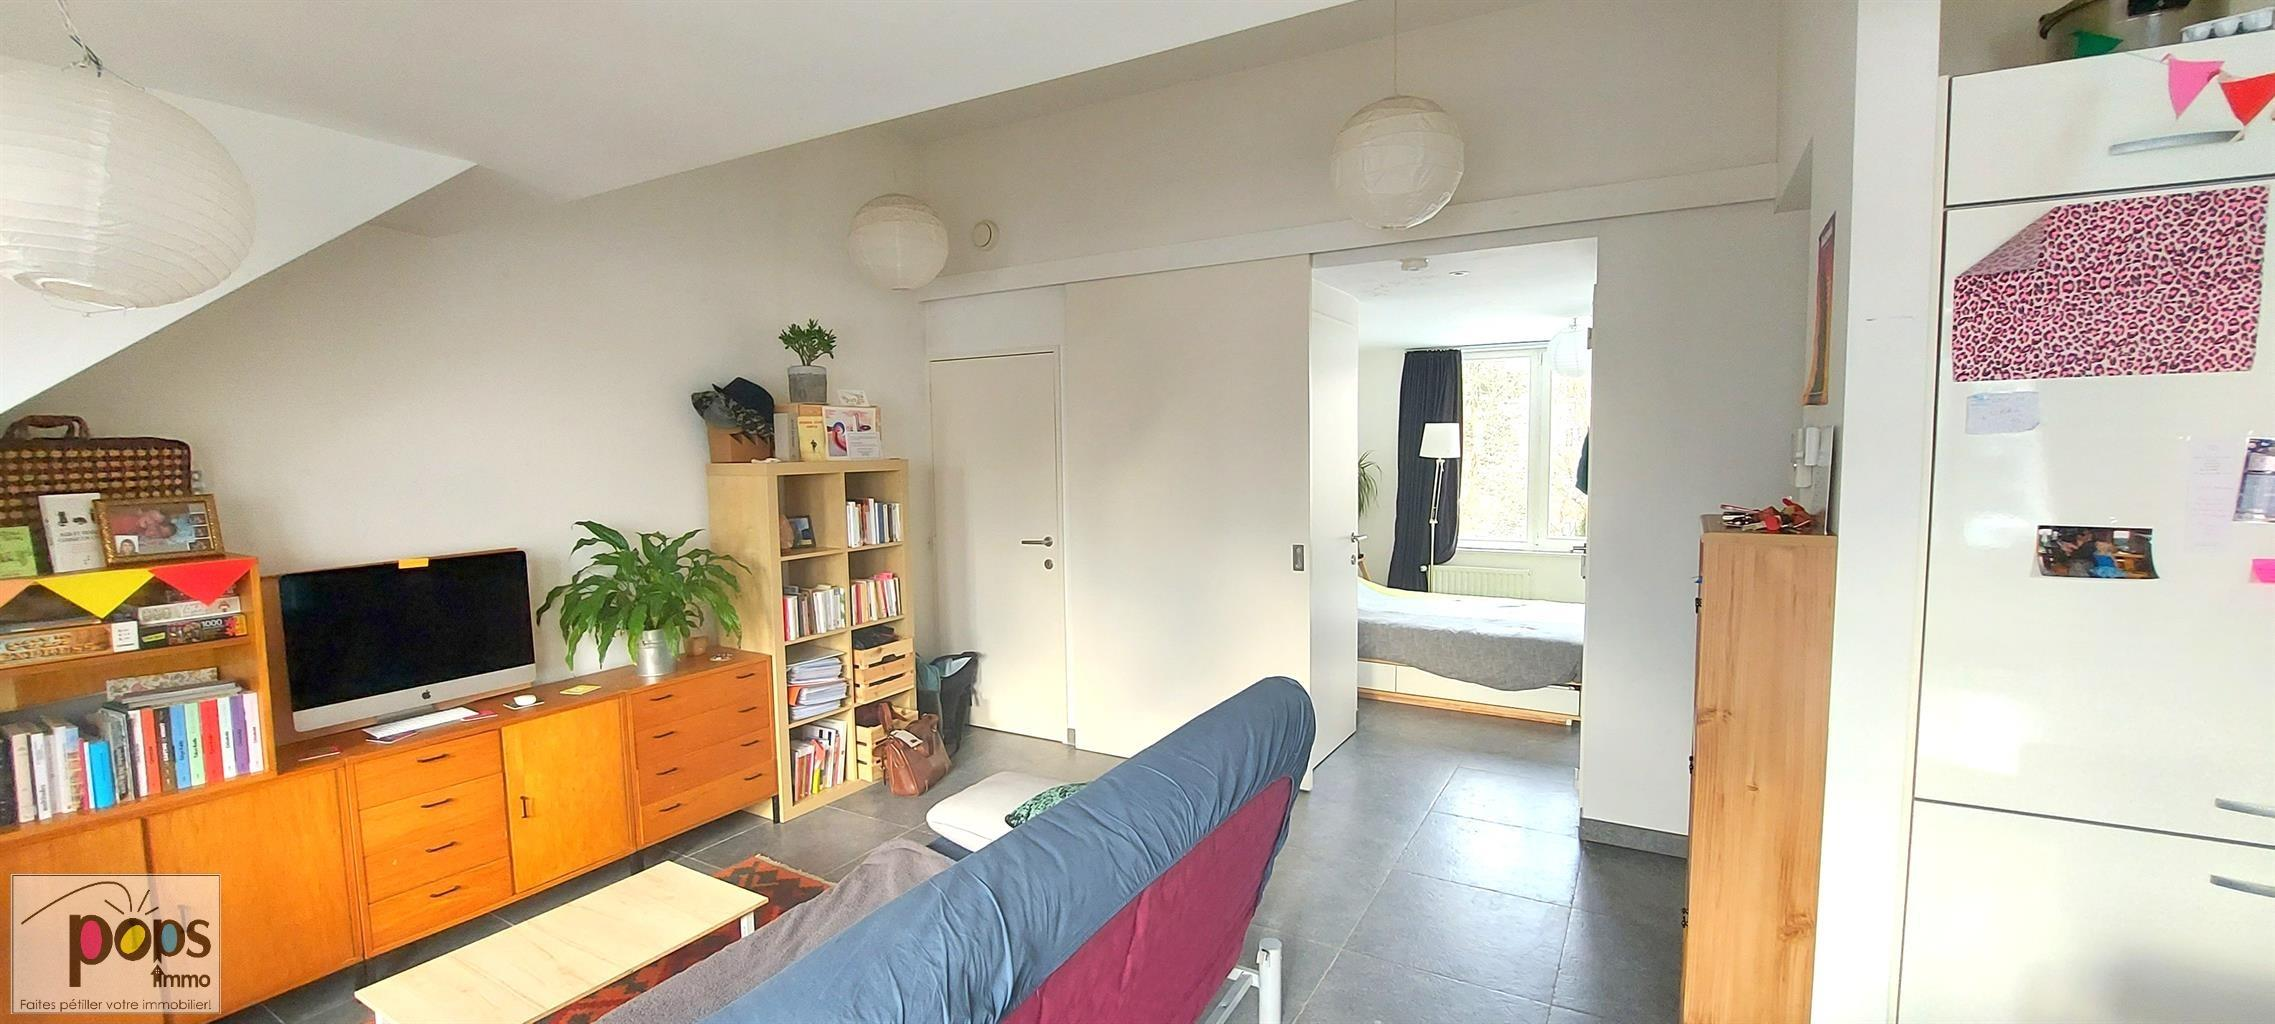 Appartement - Uccle - #4294712-16